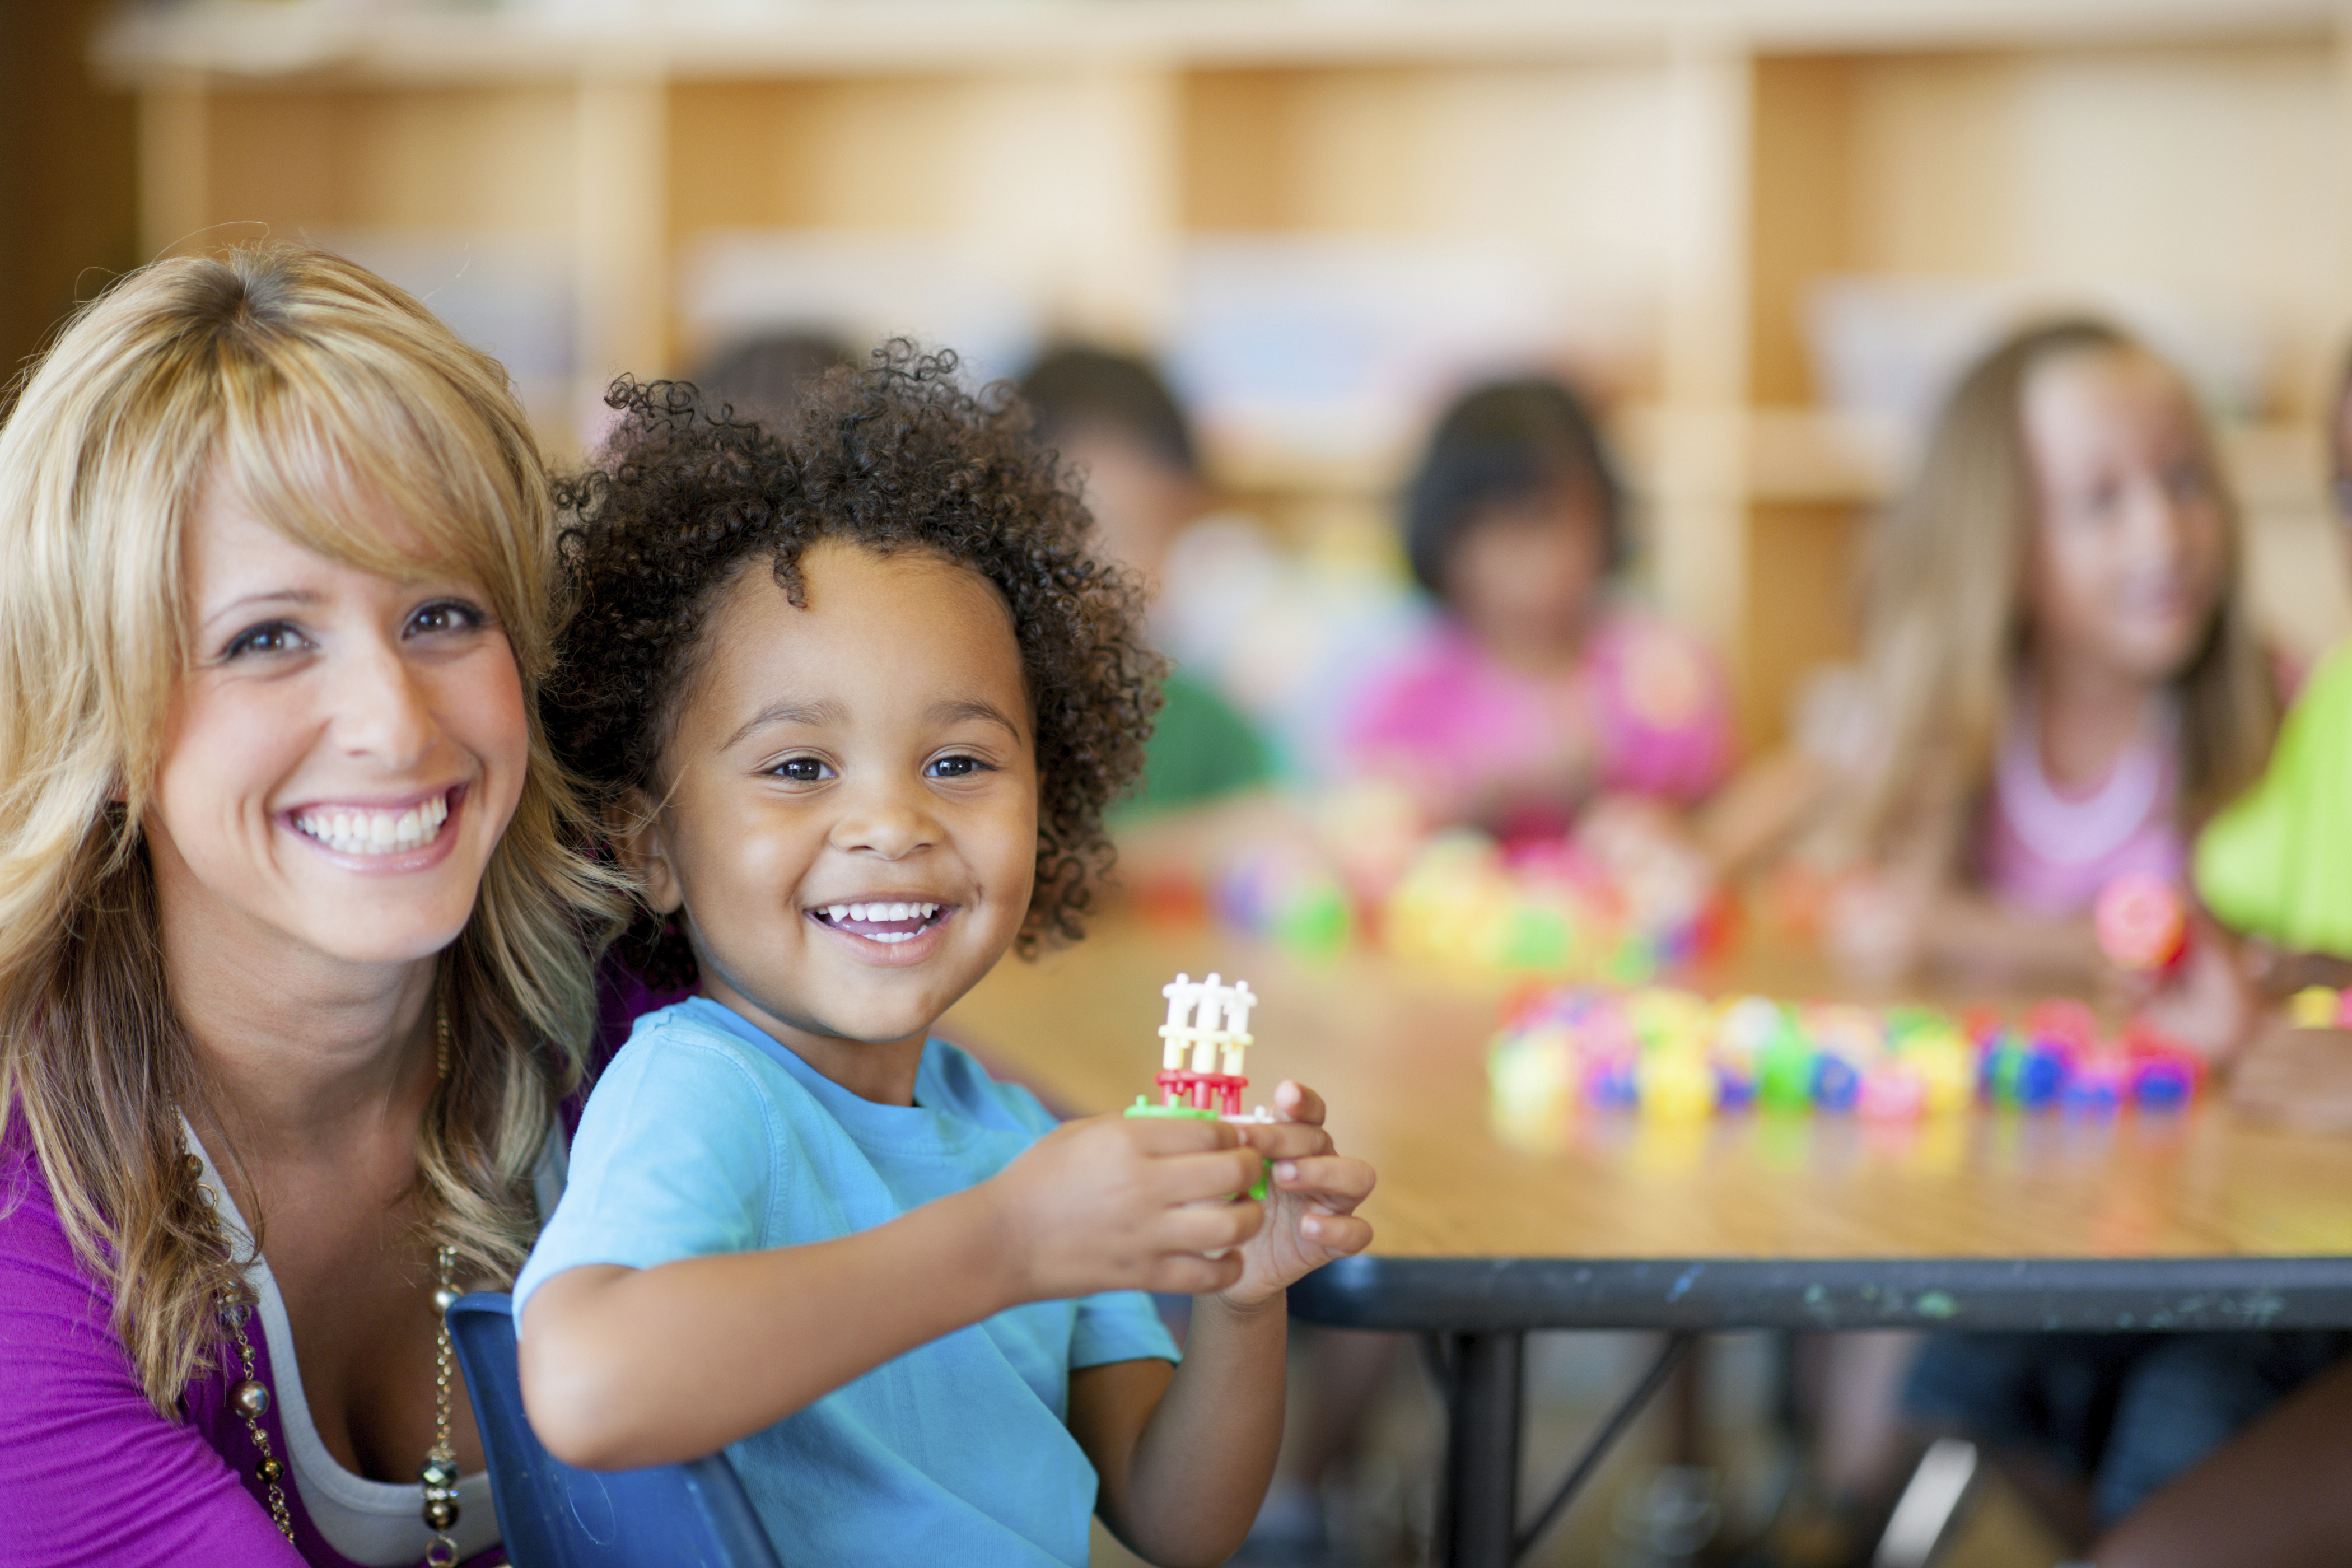 Professionalism in Child Care Settings